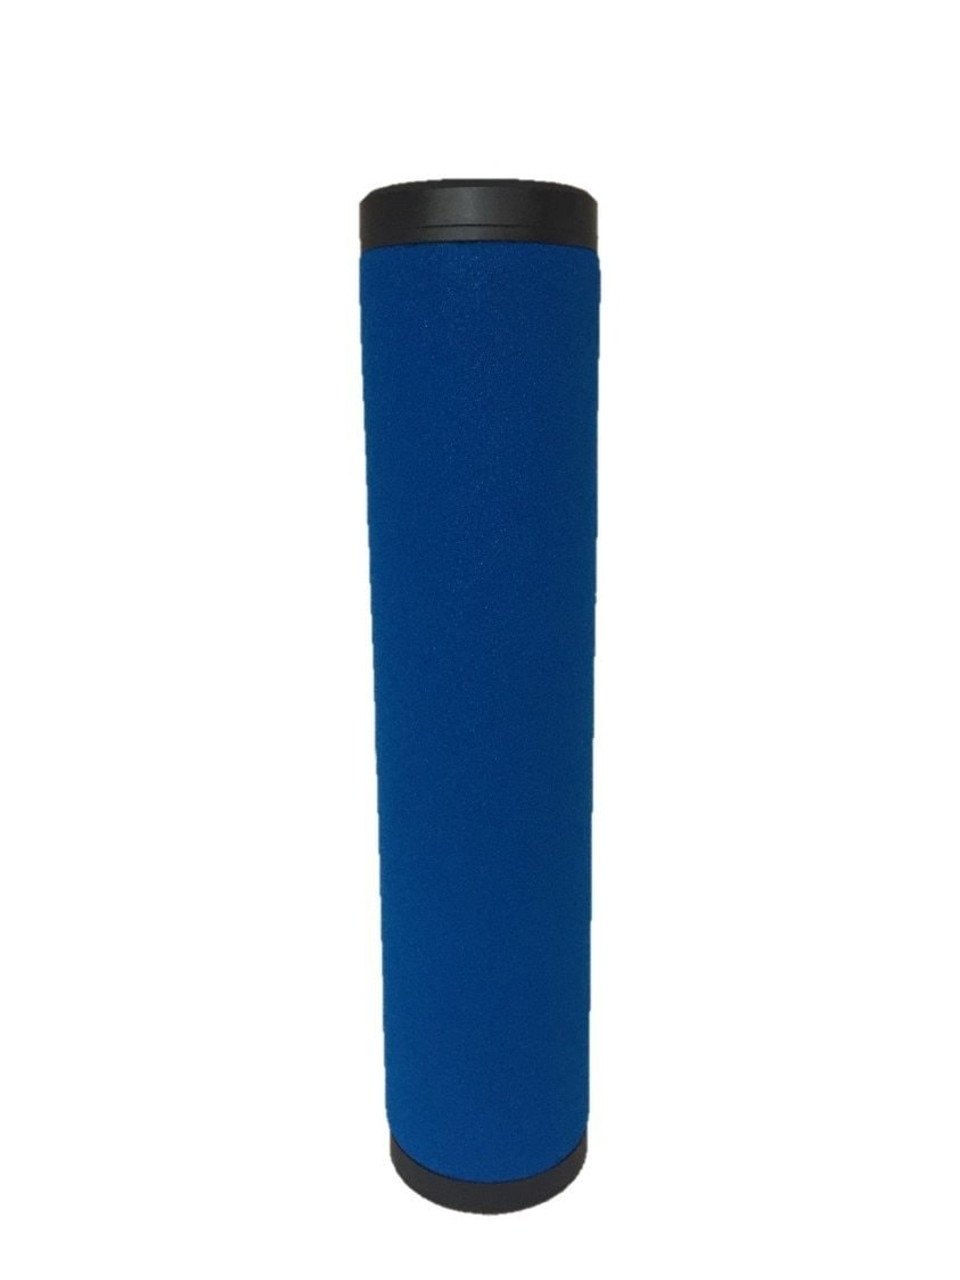 0.01 PPM Oil Removal Efficiency 0.01 Micron Particulate USOR20 Replacement Filter Element for Kaeser KOR-20